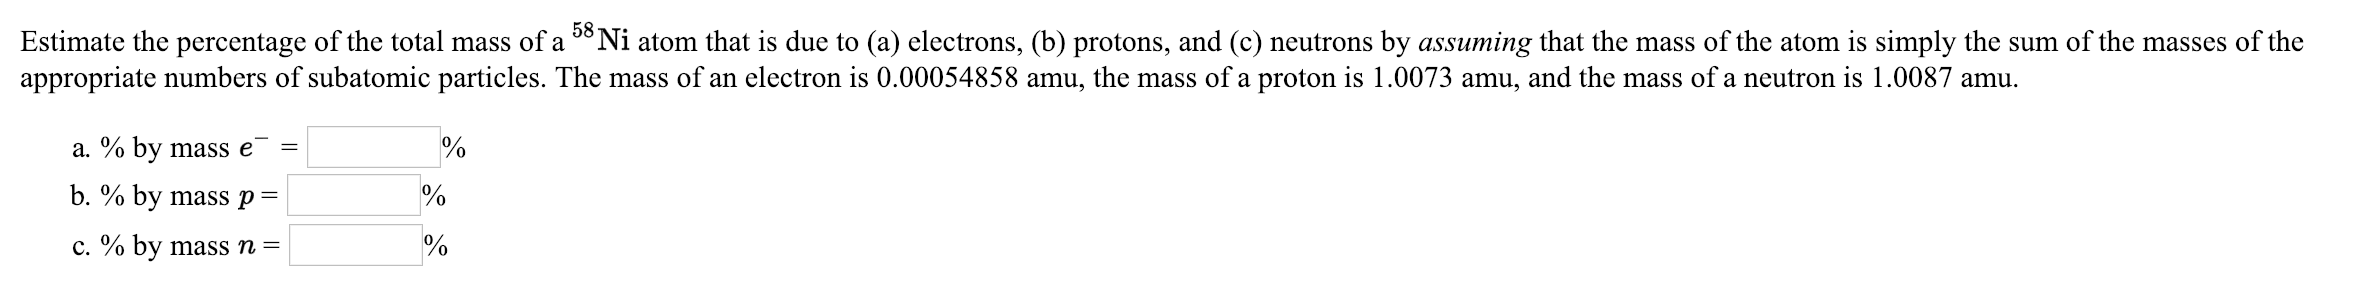 Estimate the percentage of the total mass of a 58Ni atom that is due to (a) electrons, (b) protons, and (c) neutrons by assuming that the mass of the atom is simply the sum of the masses of the appropriate numbers of subatomic particles. The mass of an electron is 0.00054858 amu, the mass of a proton is 1.0073 amu, and the mass of a neutron is 1.0087 amu. a. % by mass e- b, % by mass p c.90 by mass n- 0 0 0 0